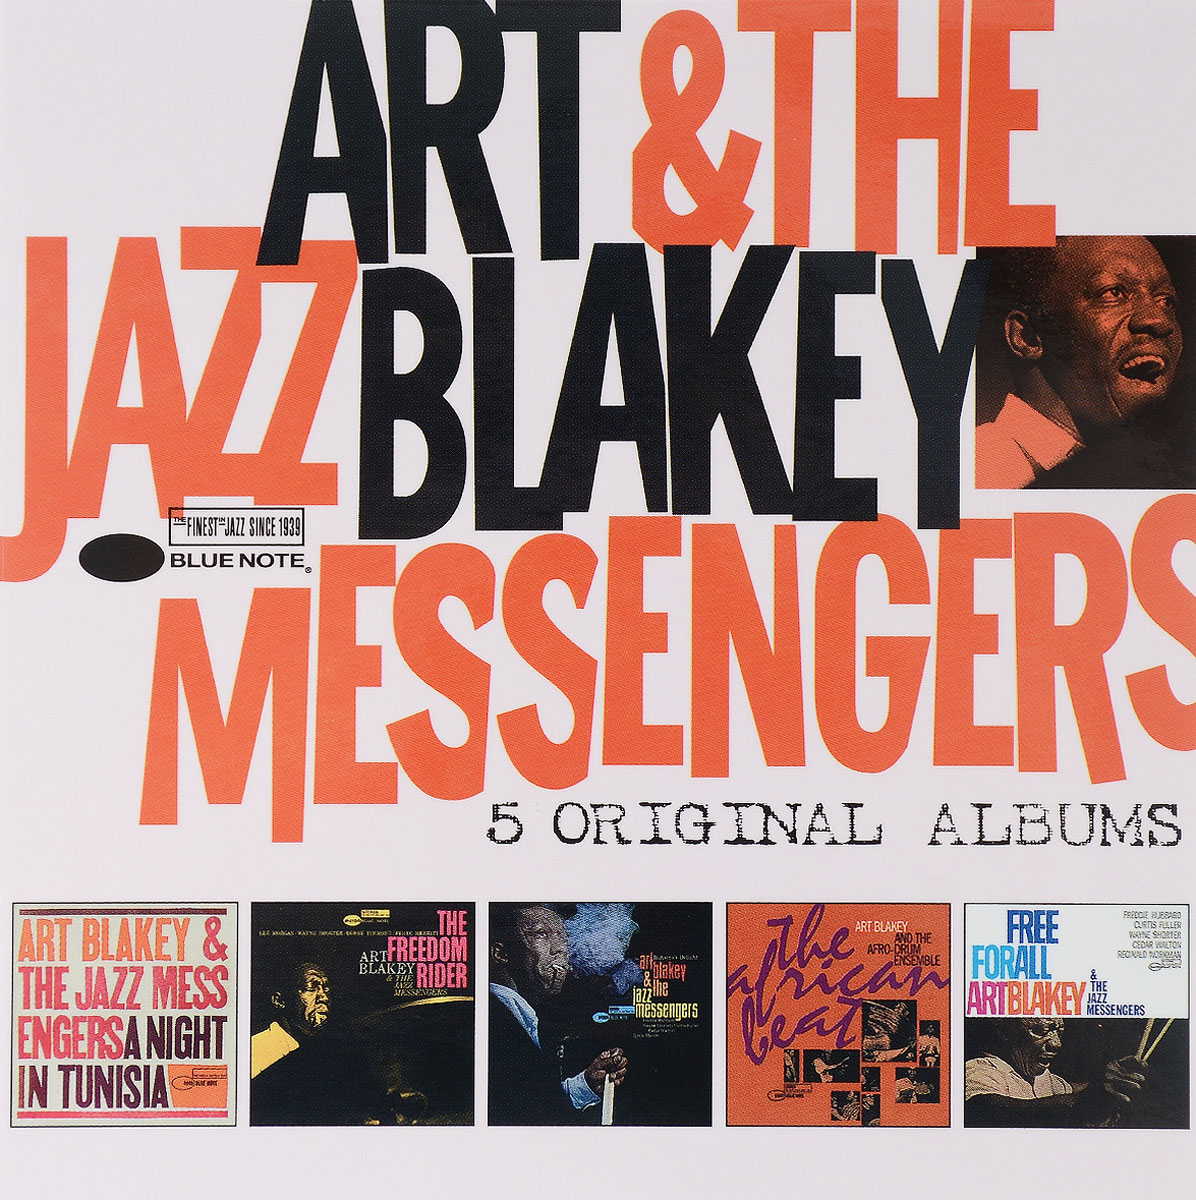 Арт Блэйки,The Jazz Messengers,The Afro-Drum Ensemble,The Jazz Messengers Art Blakey & The Jazz Messengers. 5 Original Albums (5 CD) the jazz cafe 3 cd